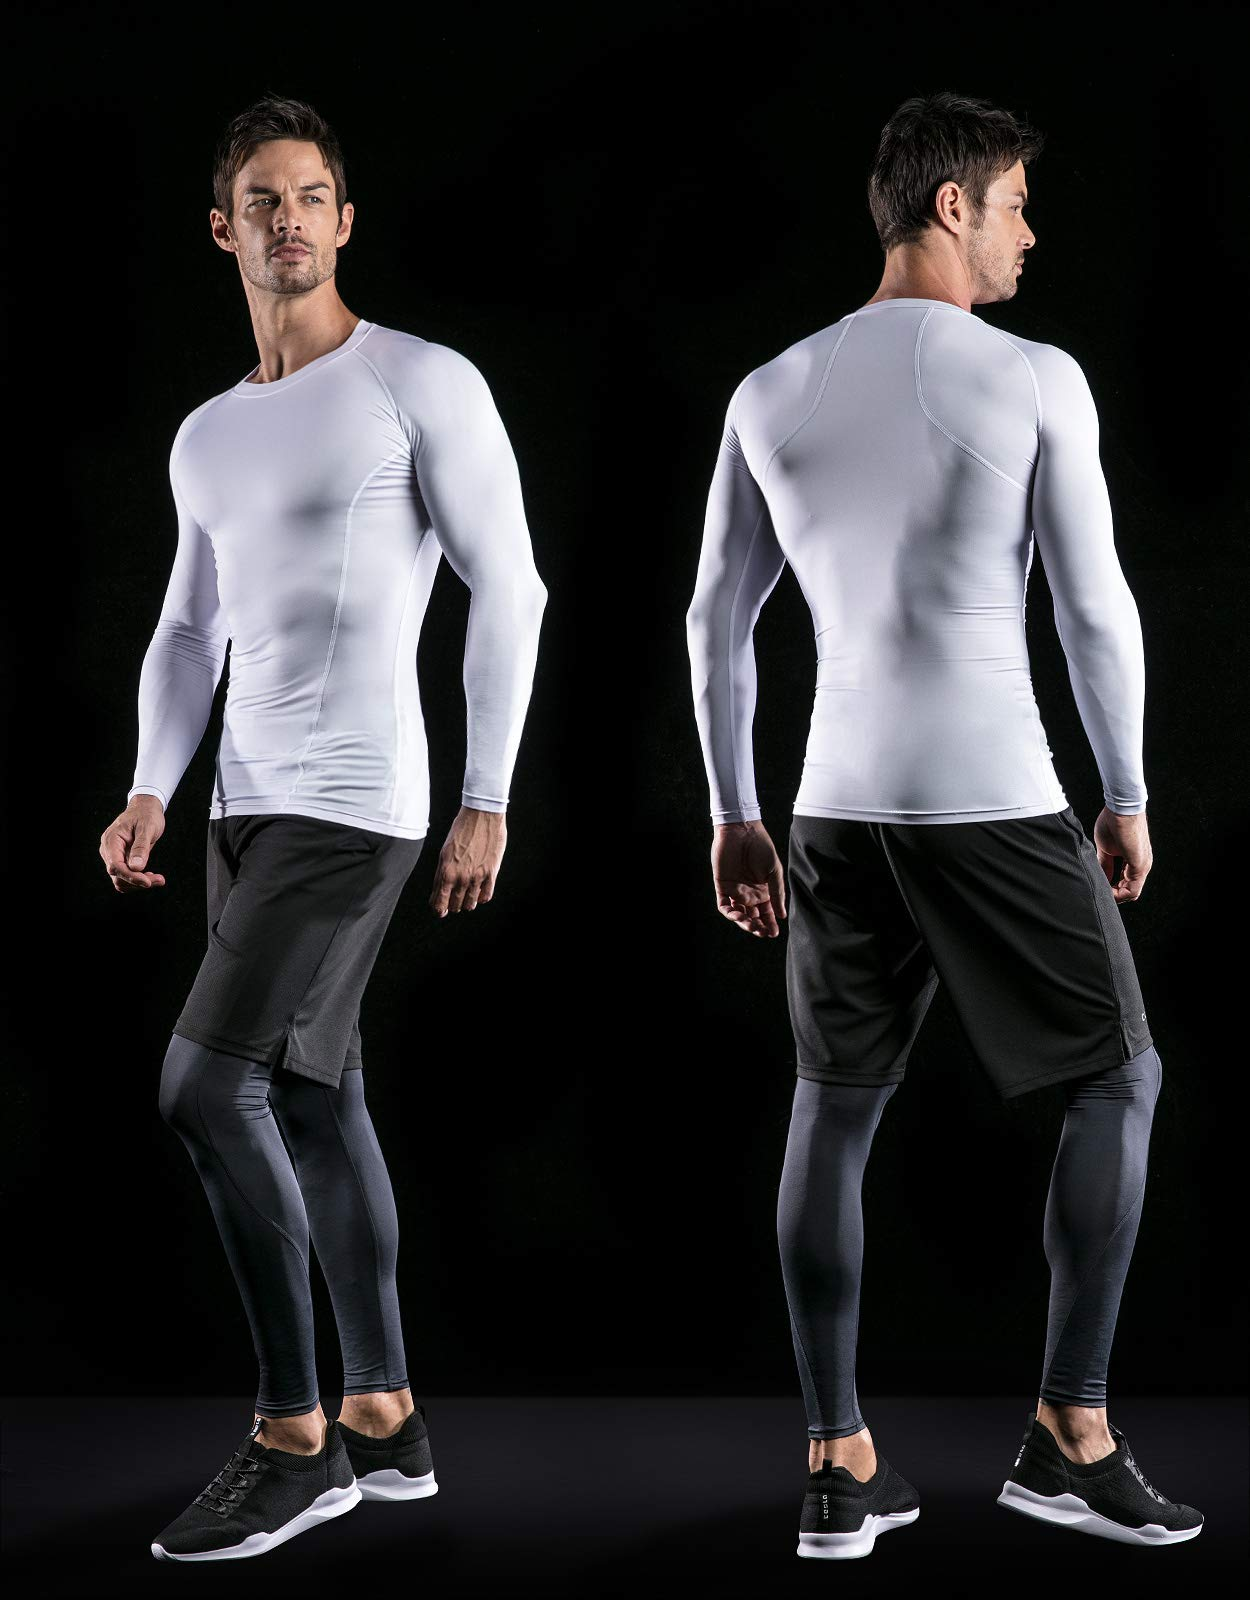 ATHLIO AO-BLS01-WHT_Large Men's (Pack of 3) Cool Dry Compression Long Sleeve Baselayer Athletic Sports T-Shirts Tops BLS01 by ATHLIO (Image #6)